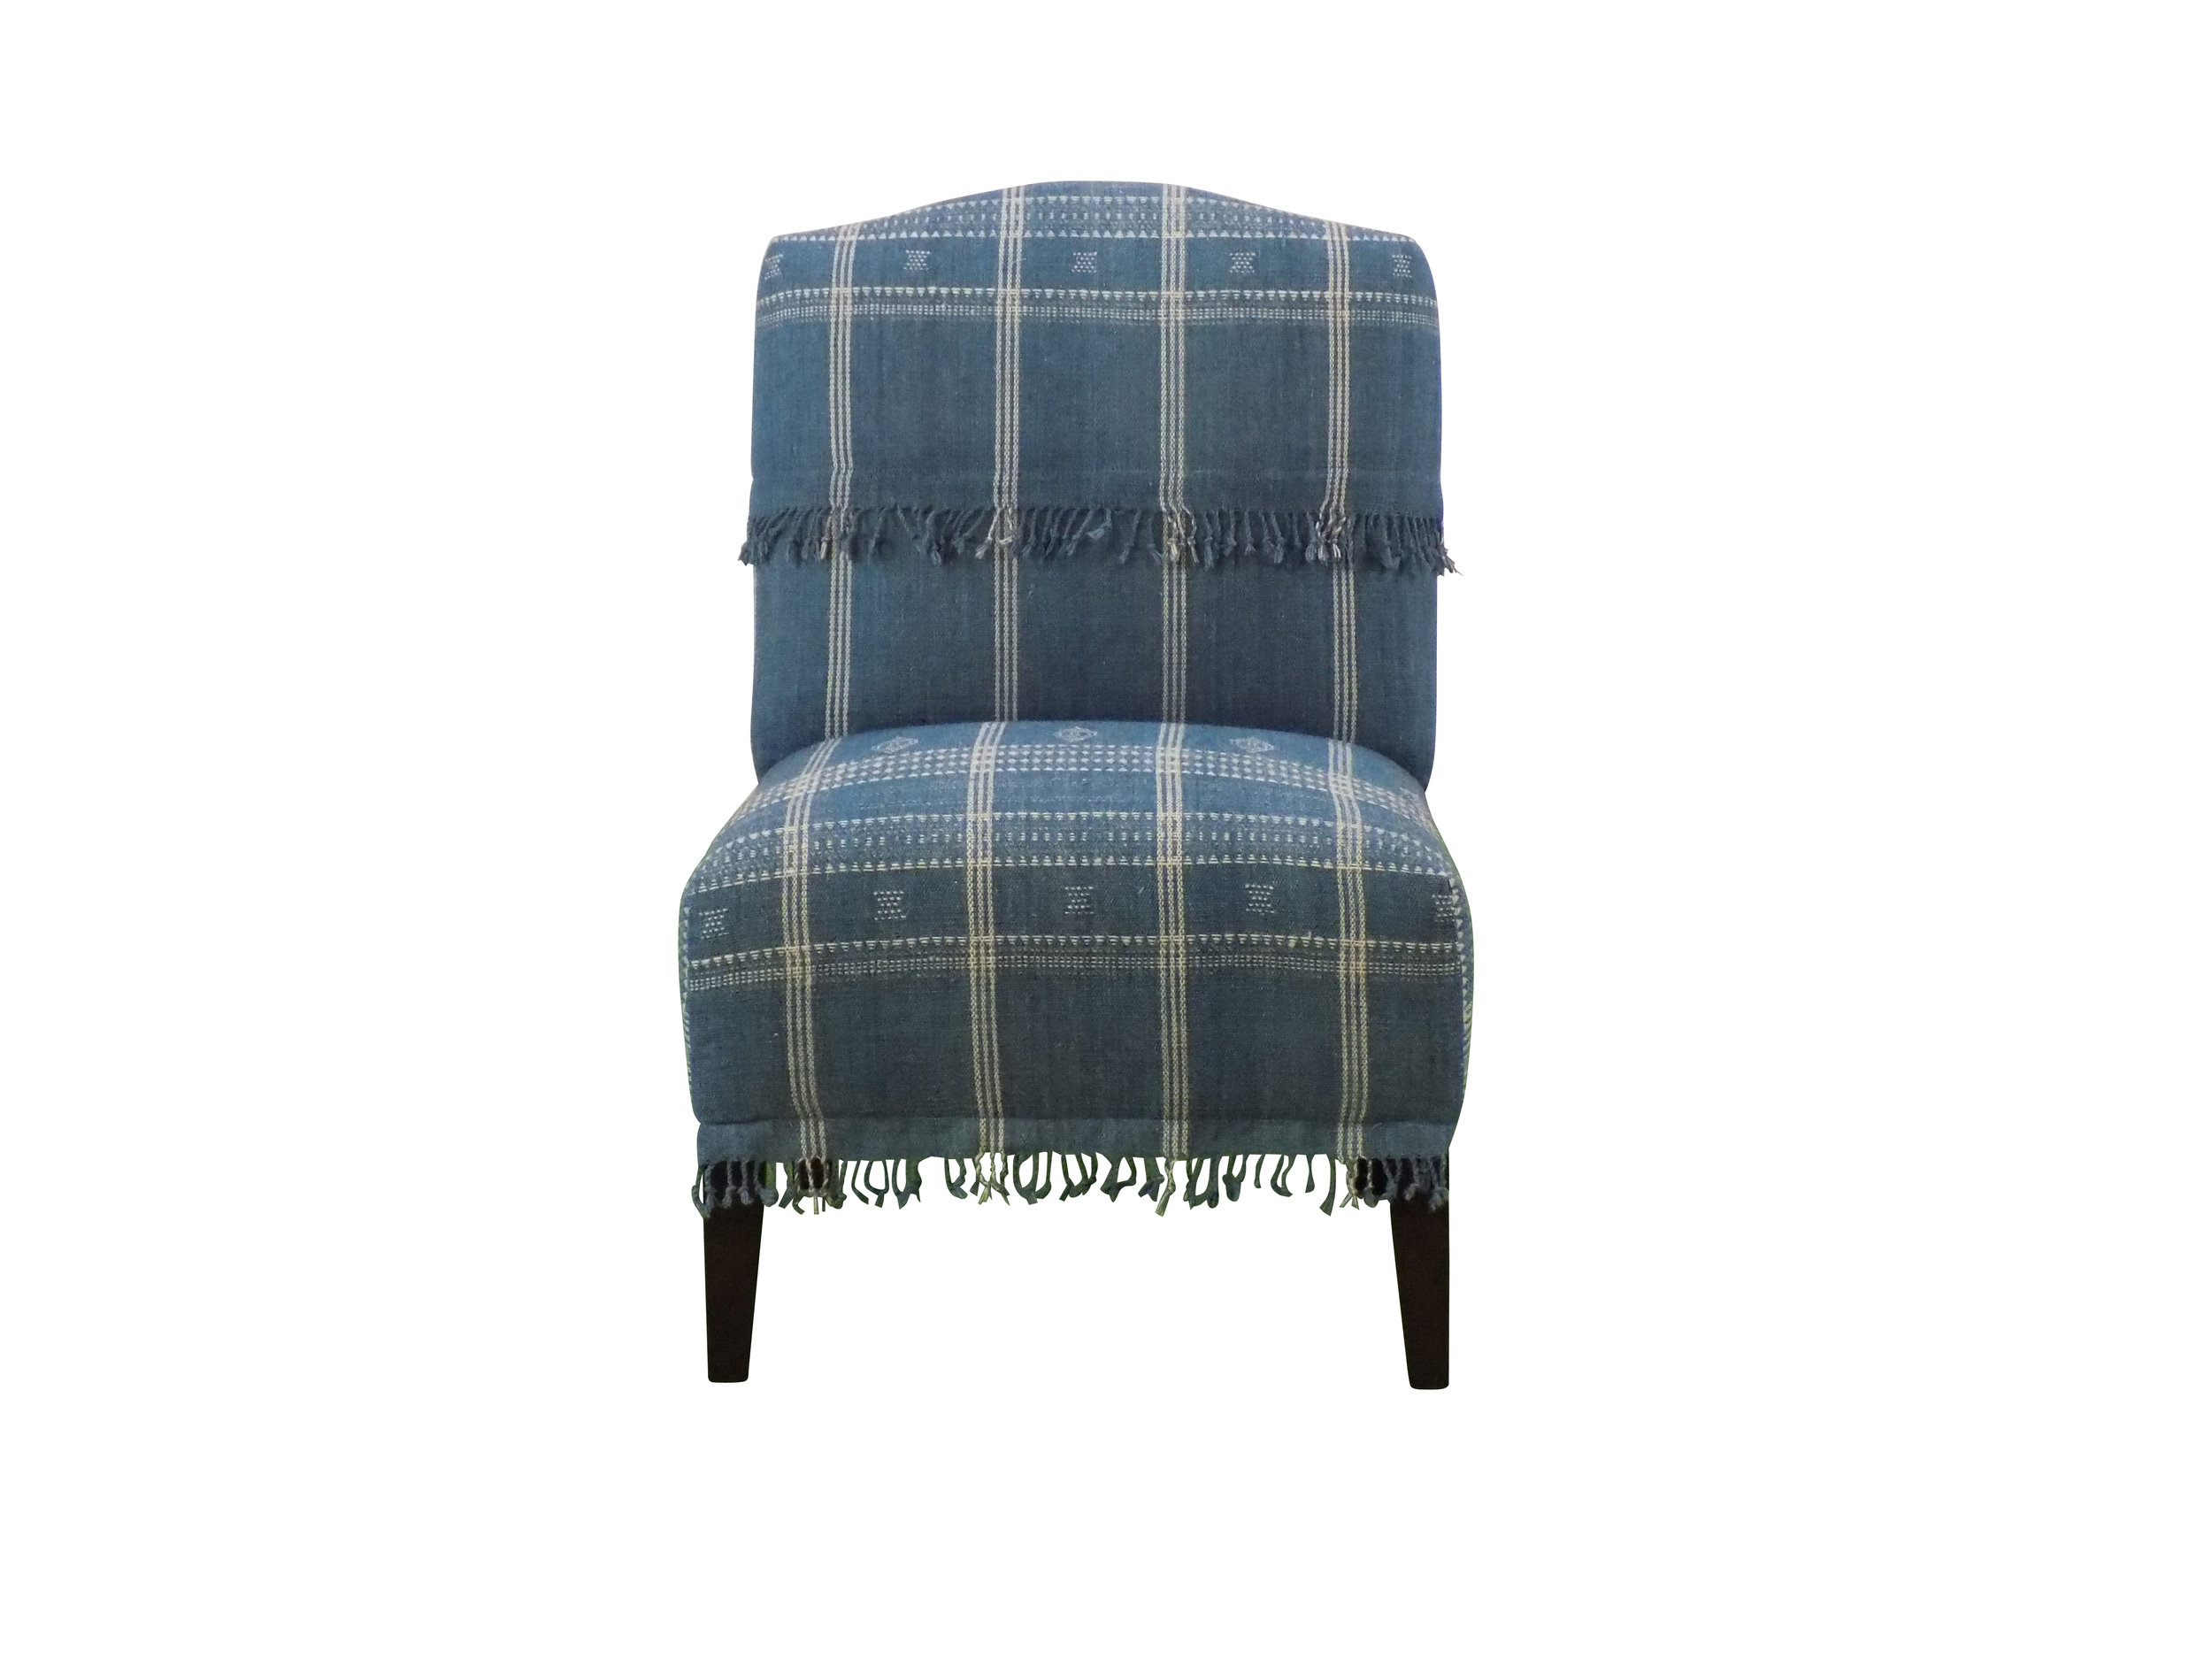 Bridgeport chair in custom blue and white fabric front view